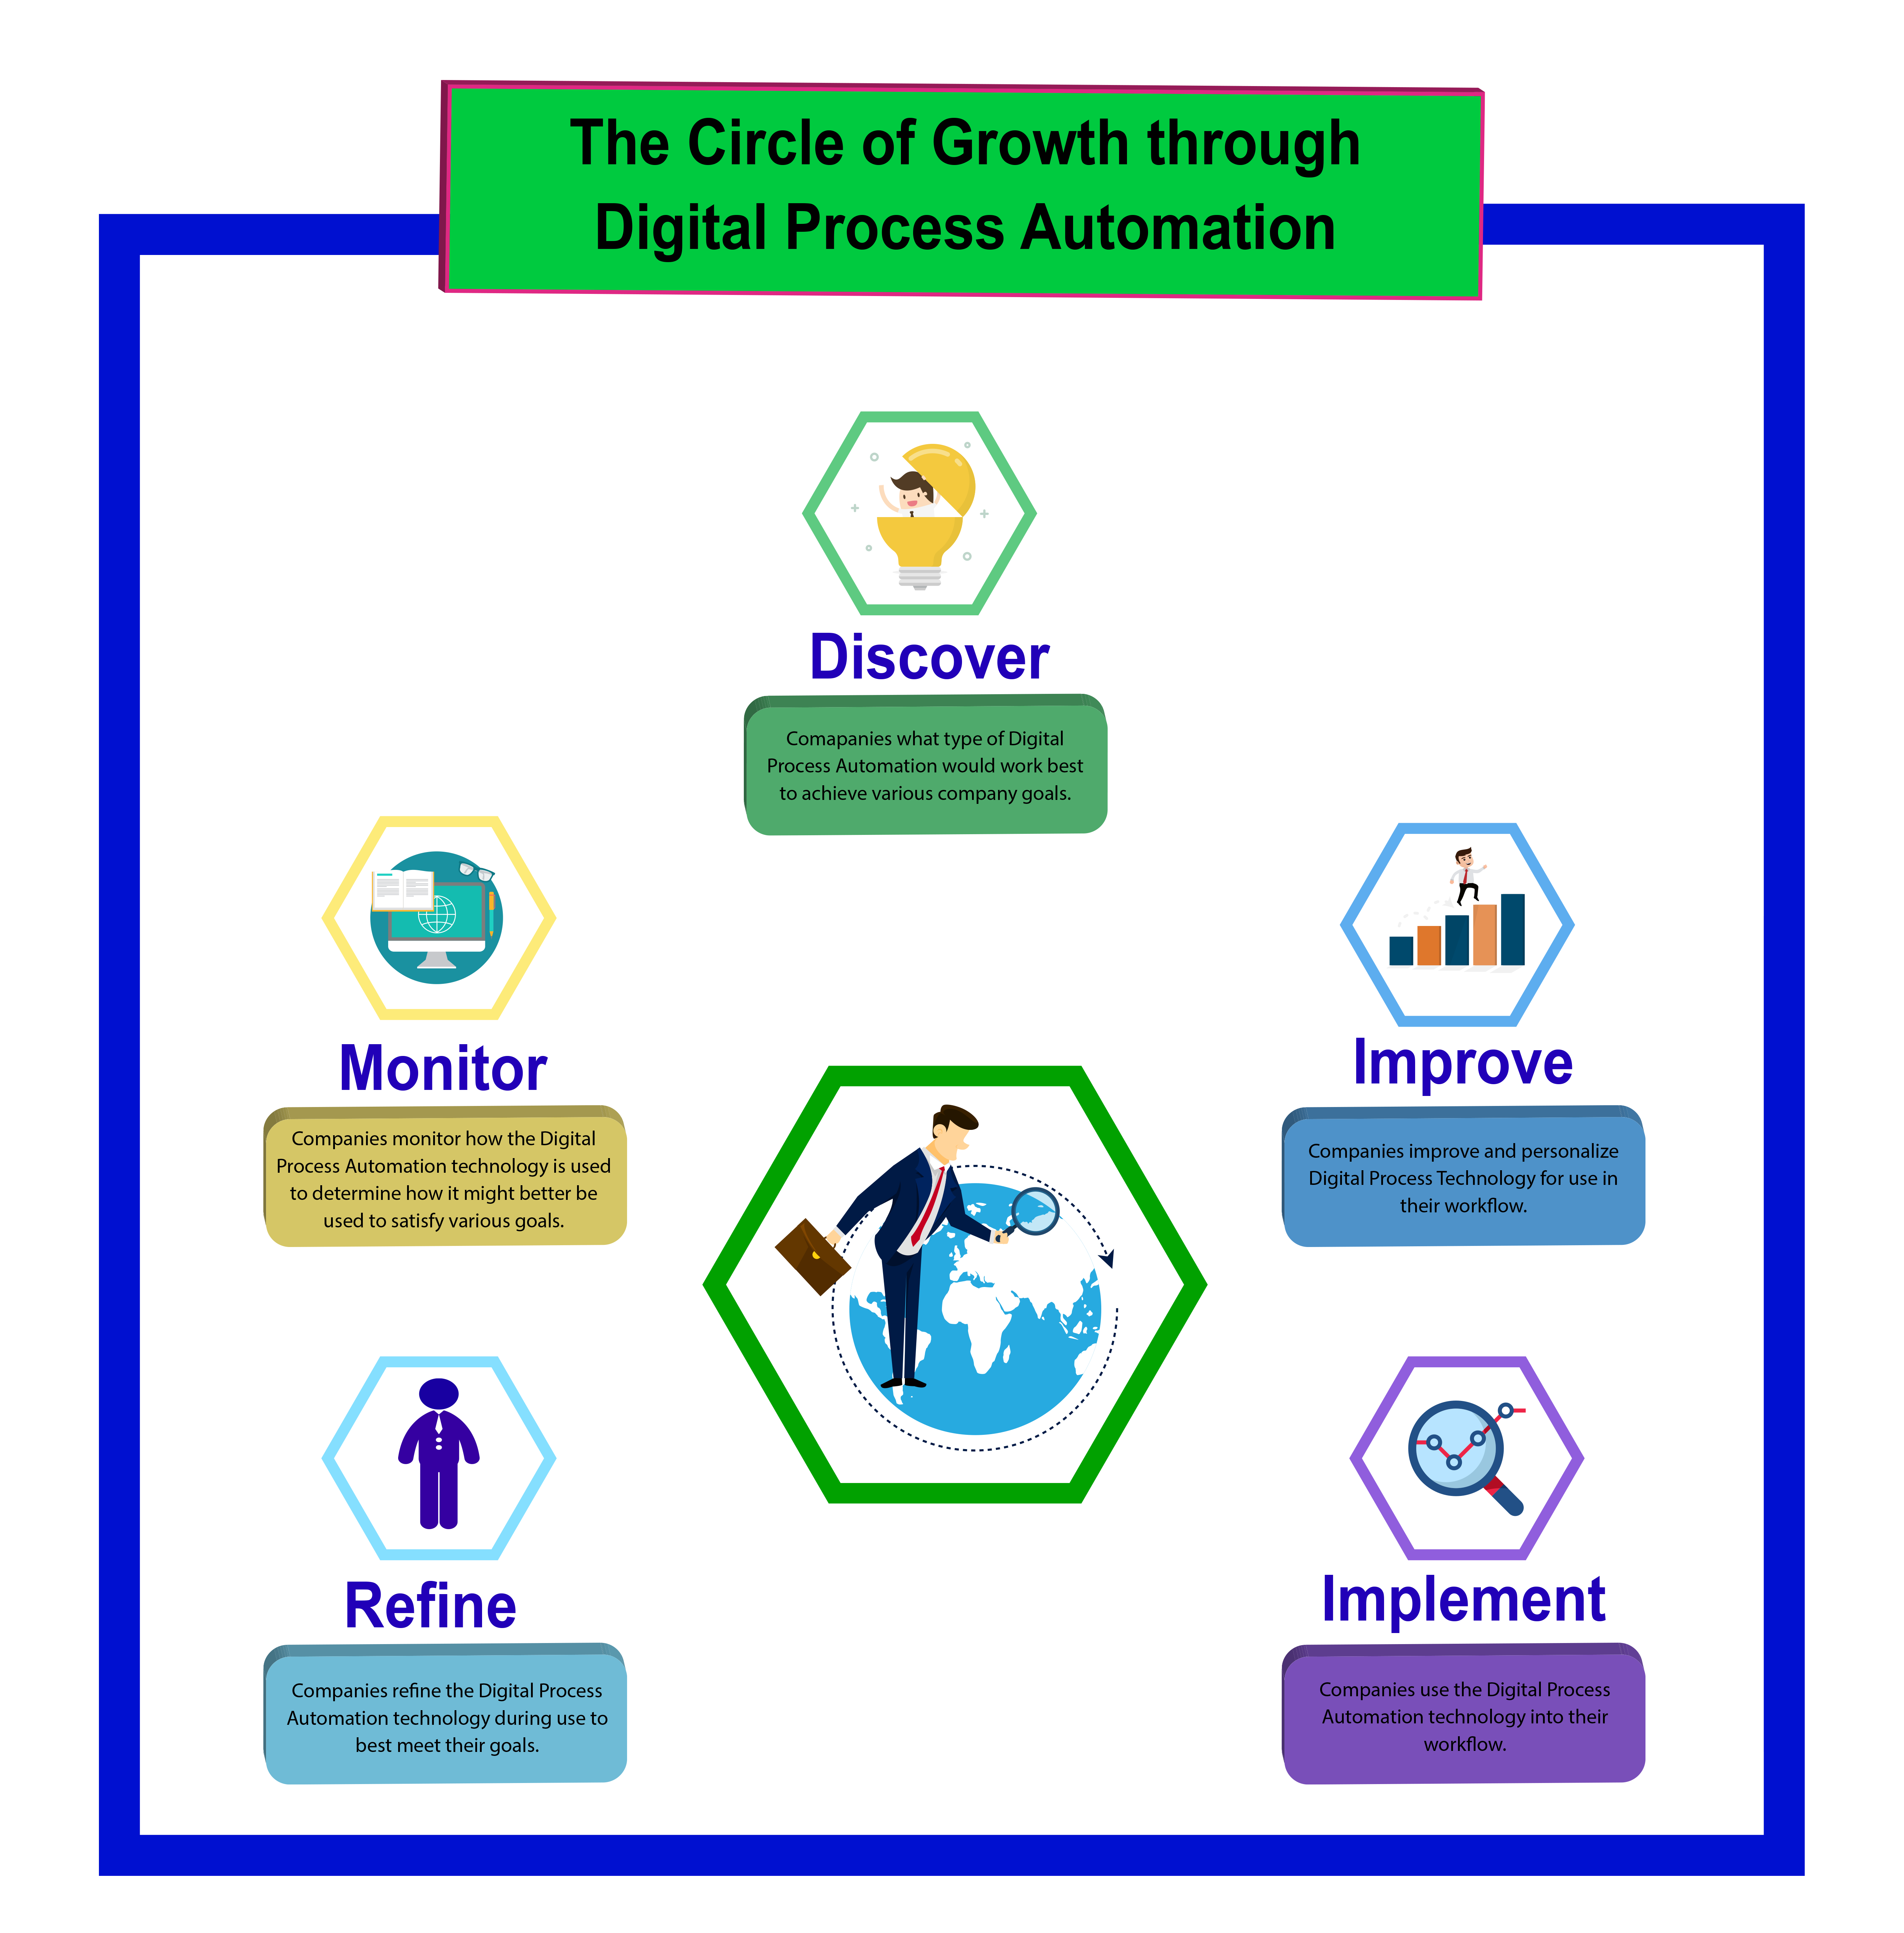 Fig 2, The Circle of Growth Through DPA